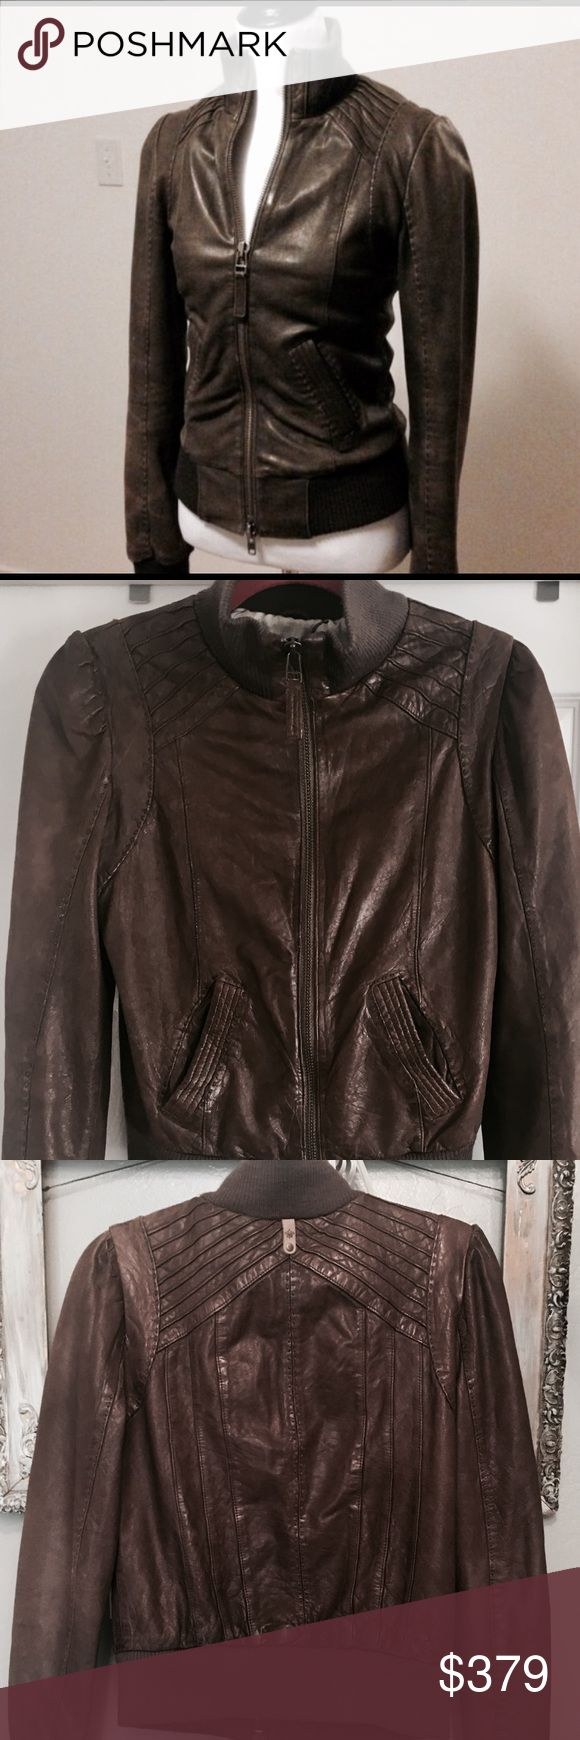 """MACKAGE """"JERRY"""" LEATHER BOMBER JACKET M MSRP $550 NWOT Mackage  """"JERRY"""" leather bomber in perfect condition (retail $550). This style was made exclusively for Aritzia. MEASUREMENTS : armpit to armpit flat side to side: 19""""  SLEEVE LENGTH: from armpit to bottom: 18""""  SHOULDER TO SHOULDER AT WIDEST: 15 1/2""""  LENGTH FROM TOP OF SHOULDER TO BOTTOM: 22 1/2"""" Color is a deep rich brown. Fully lined. Two from open slant pockets. Beautiful detailing and double stitching. Leather is lamb and trim is…"""